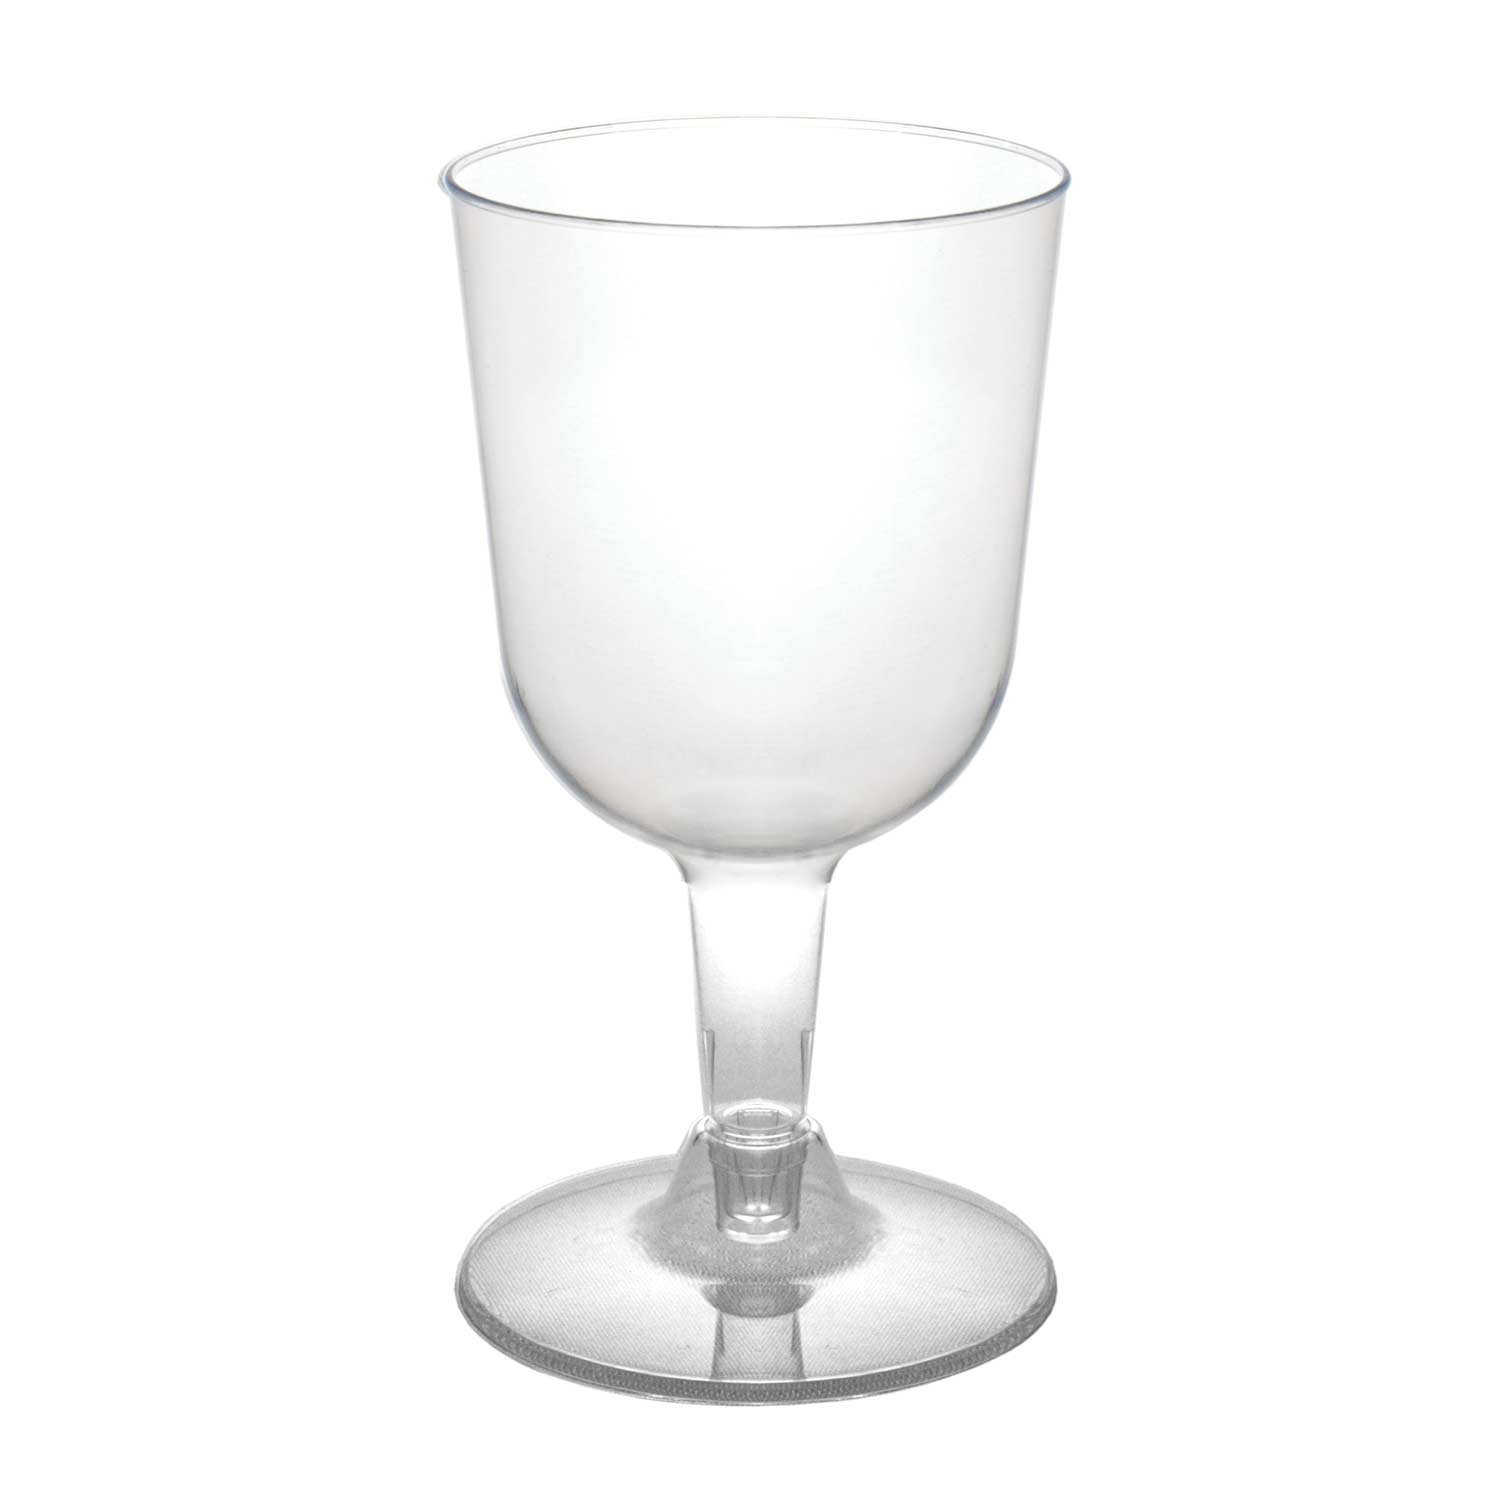 Party Essentials WINE5-10/40 Hard Plastic 2-Piece Wine Glass, 5.5-Ounce Capacity, Clear (Case of 400) by Party Essentials